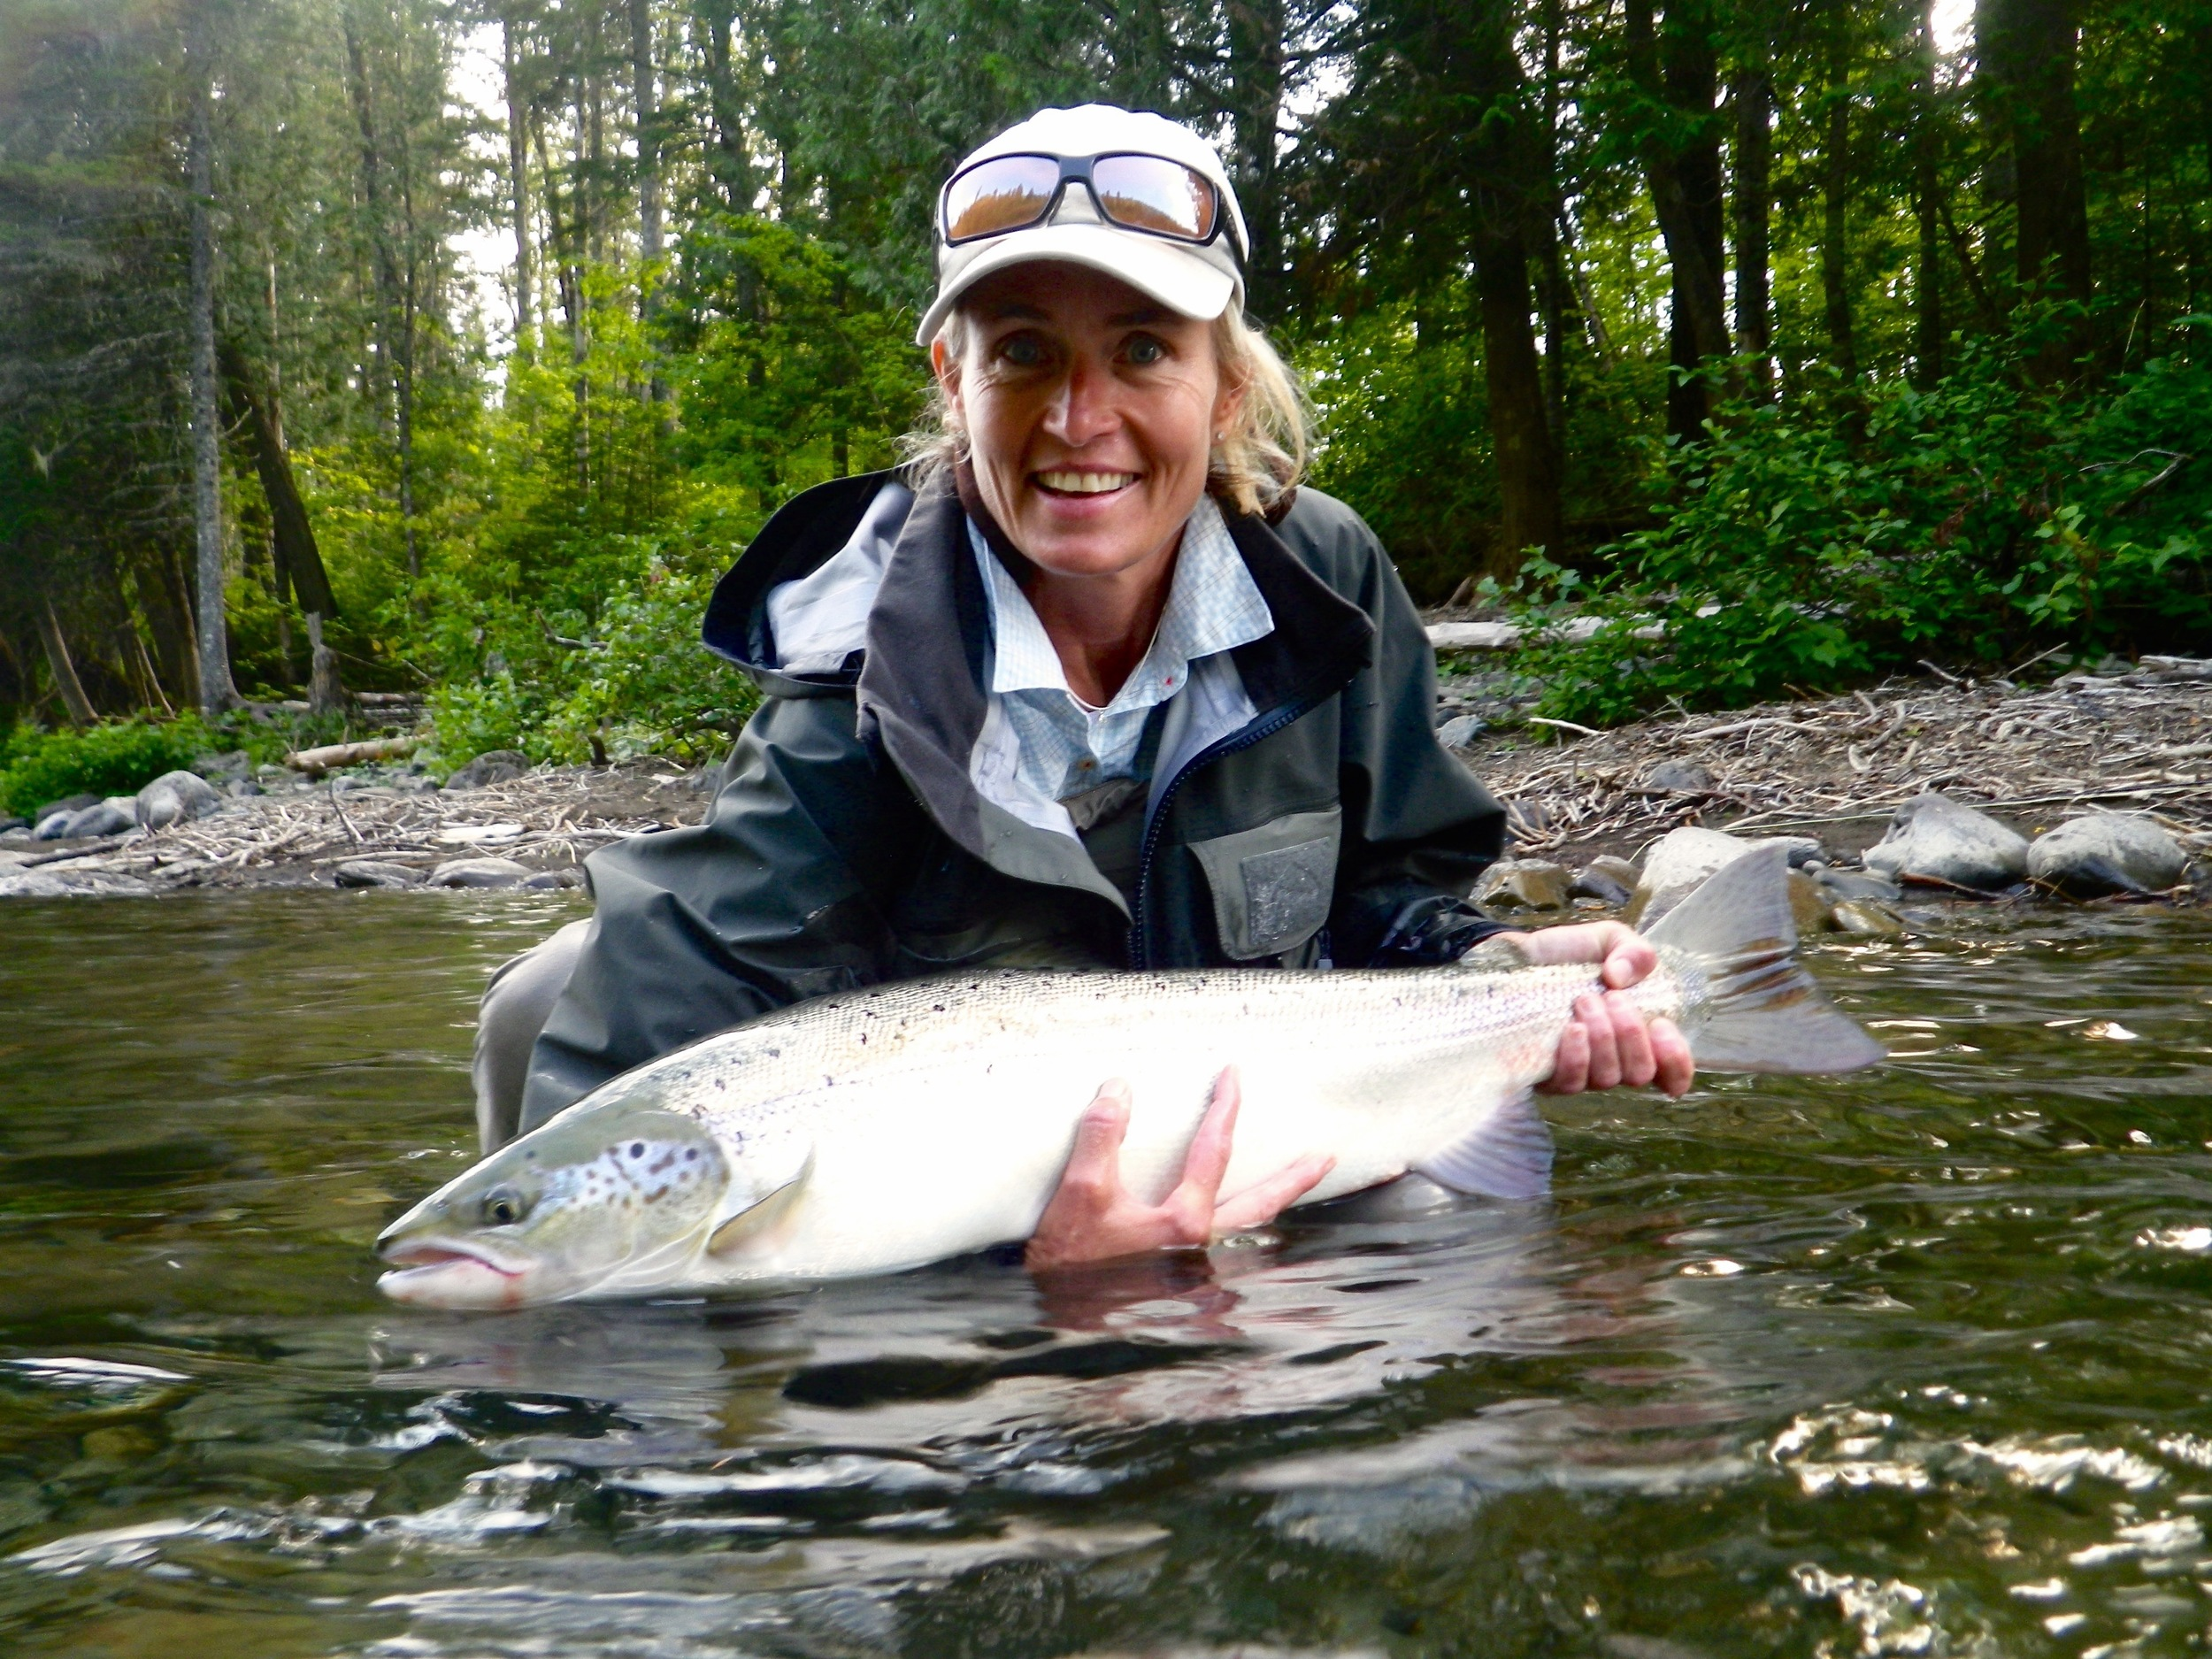 Jennifer Lafgren works for Orvis in Denver Co. This was her first Atlantic salmon, congratulations Jen!